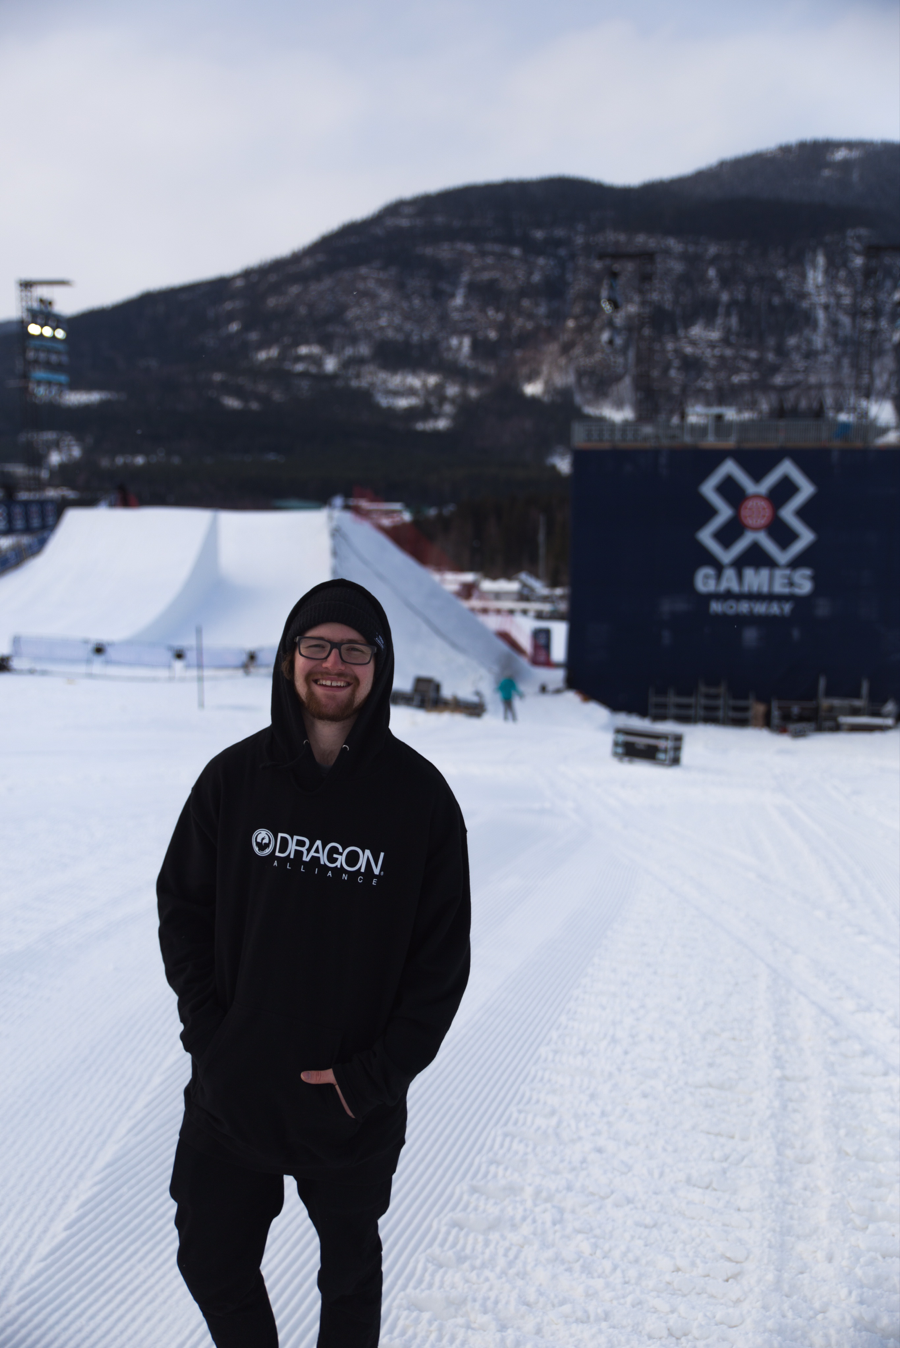 Stoked to be here for X-Games Big Air!